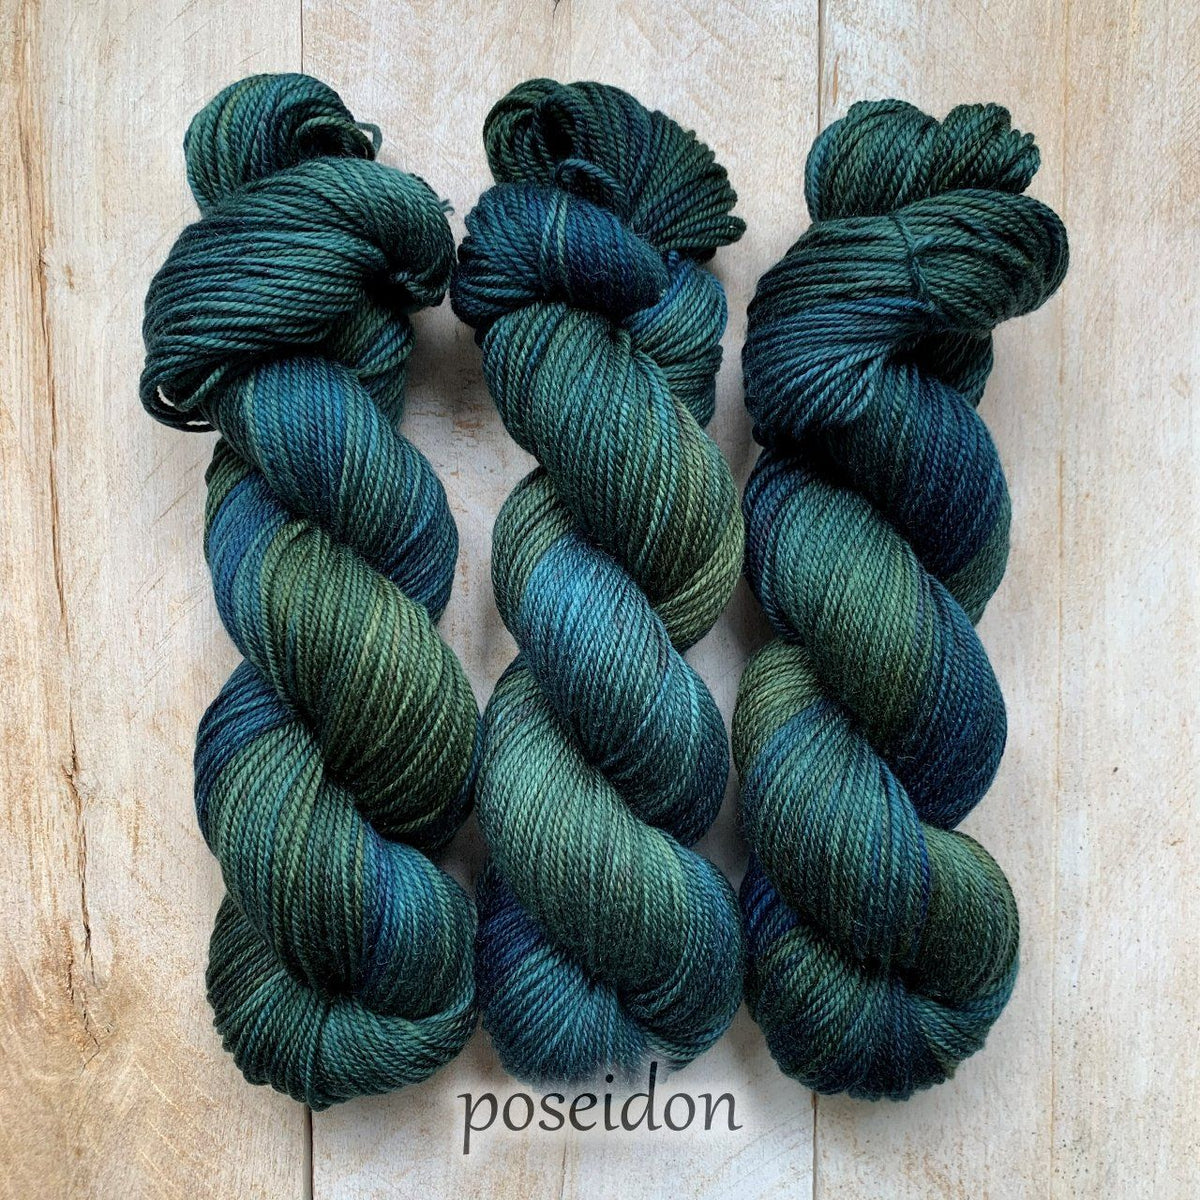 POSEIDON by Louise Robert Design | DK PURE hand-dyed Variegated yarn